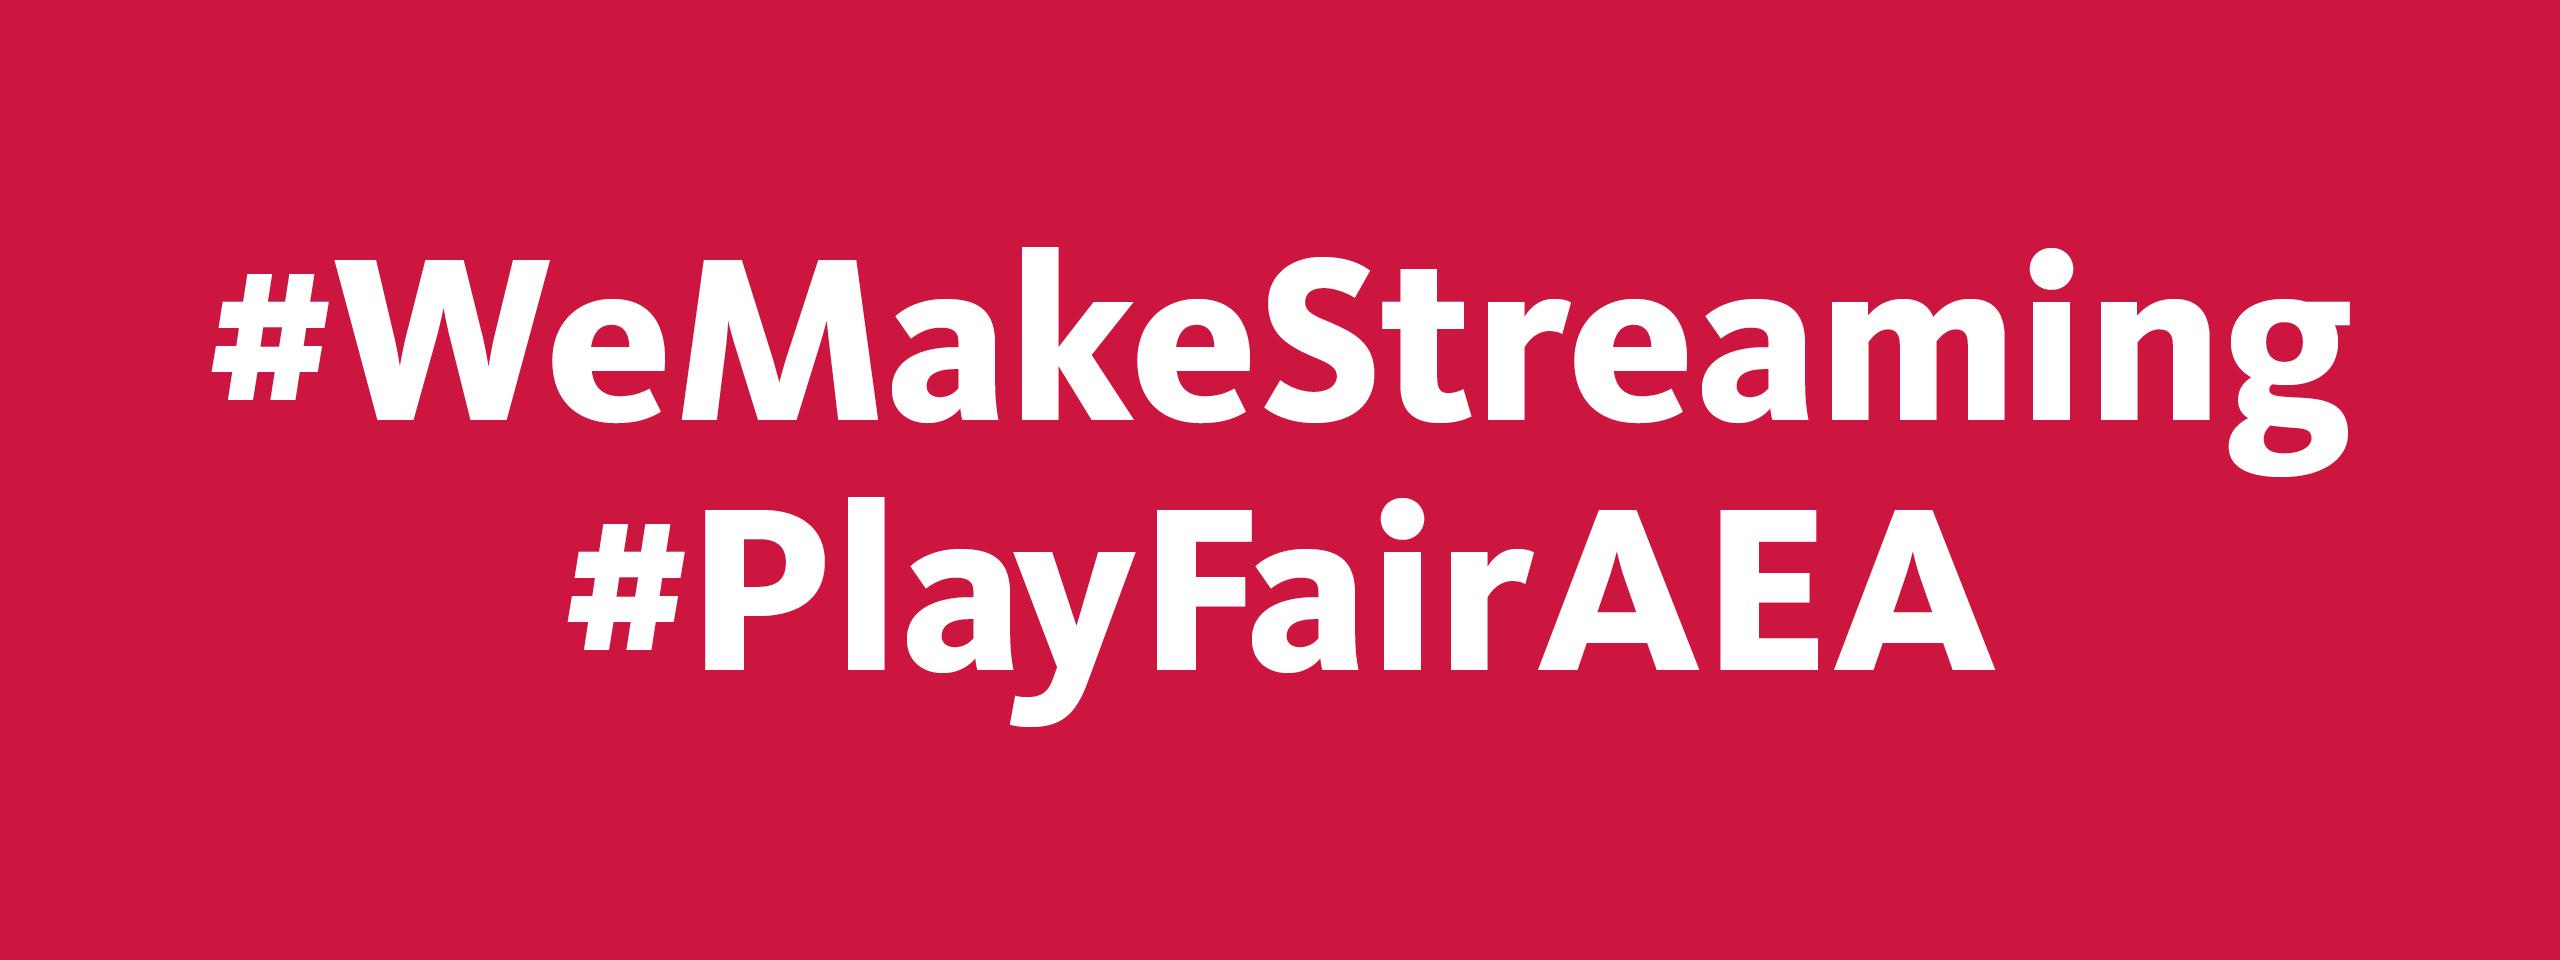 #PlayFairAEA